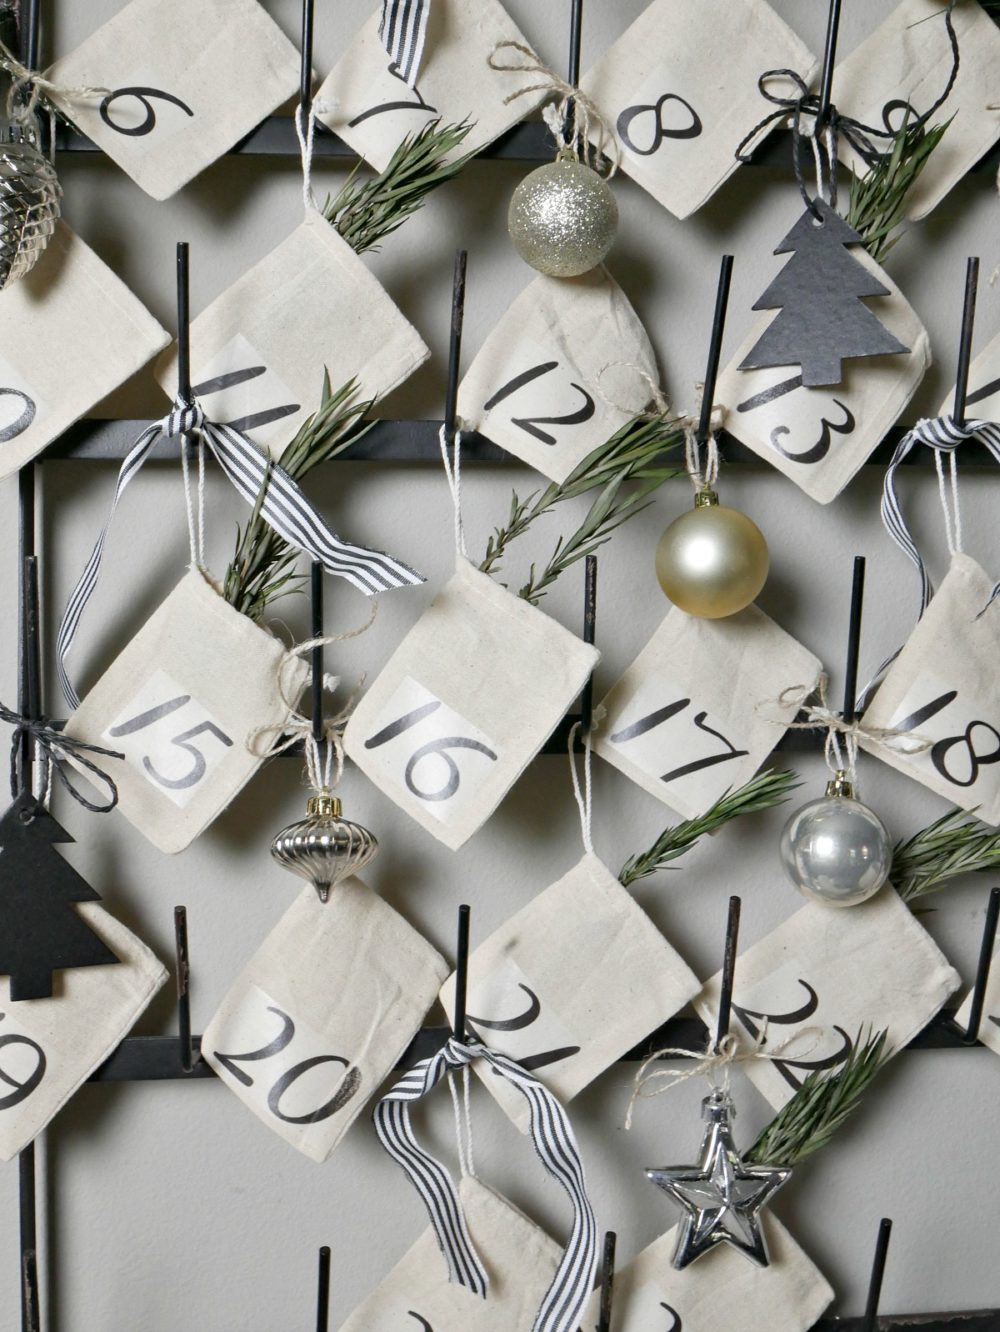 Create your own DIY Advent Calendar in less than 30 minutes! These little muslin bags hang perfectly on this vintage bottle drying rack for a festive farmhouse look.